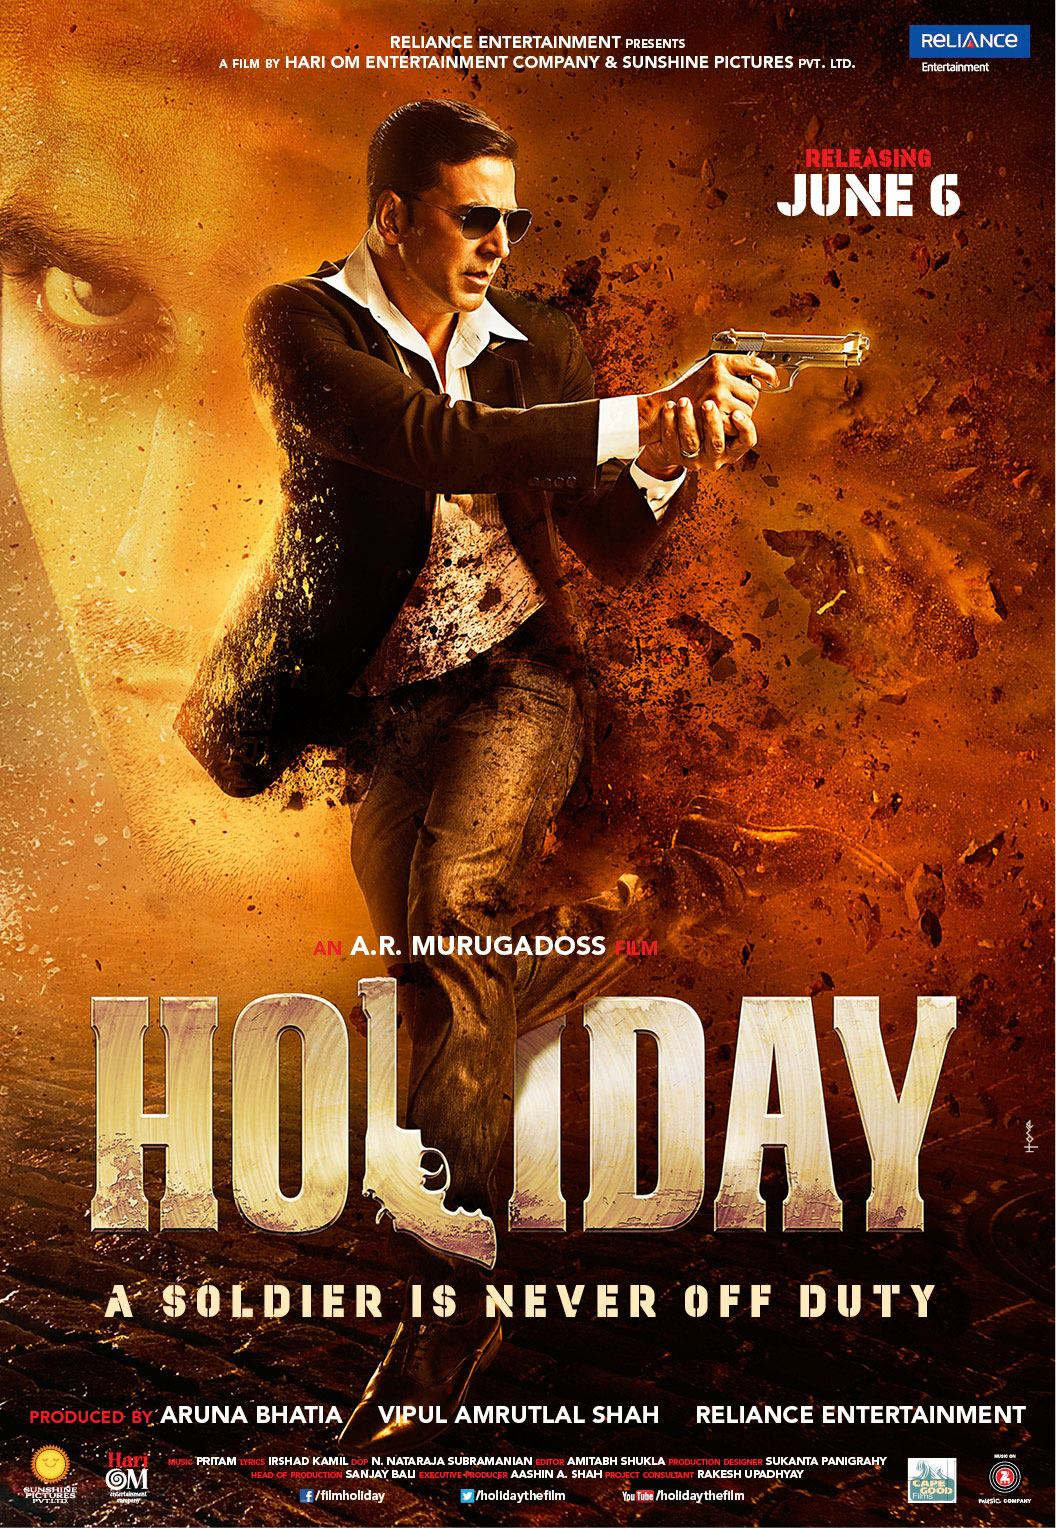 holiday-soldier-never-off-duty